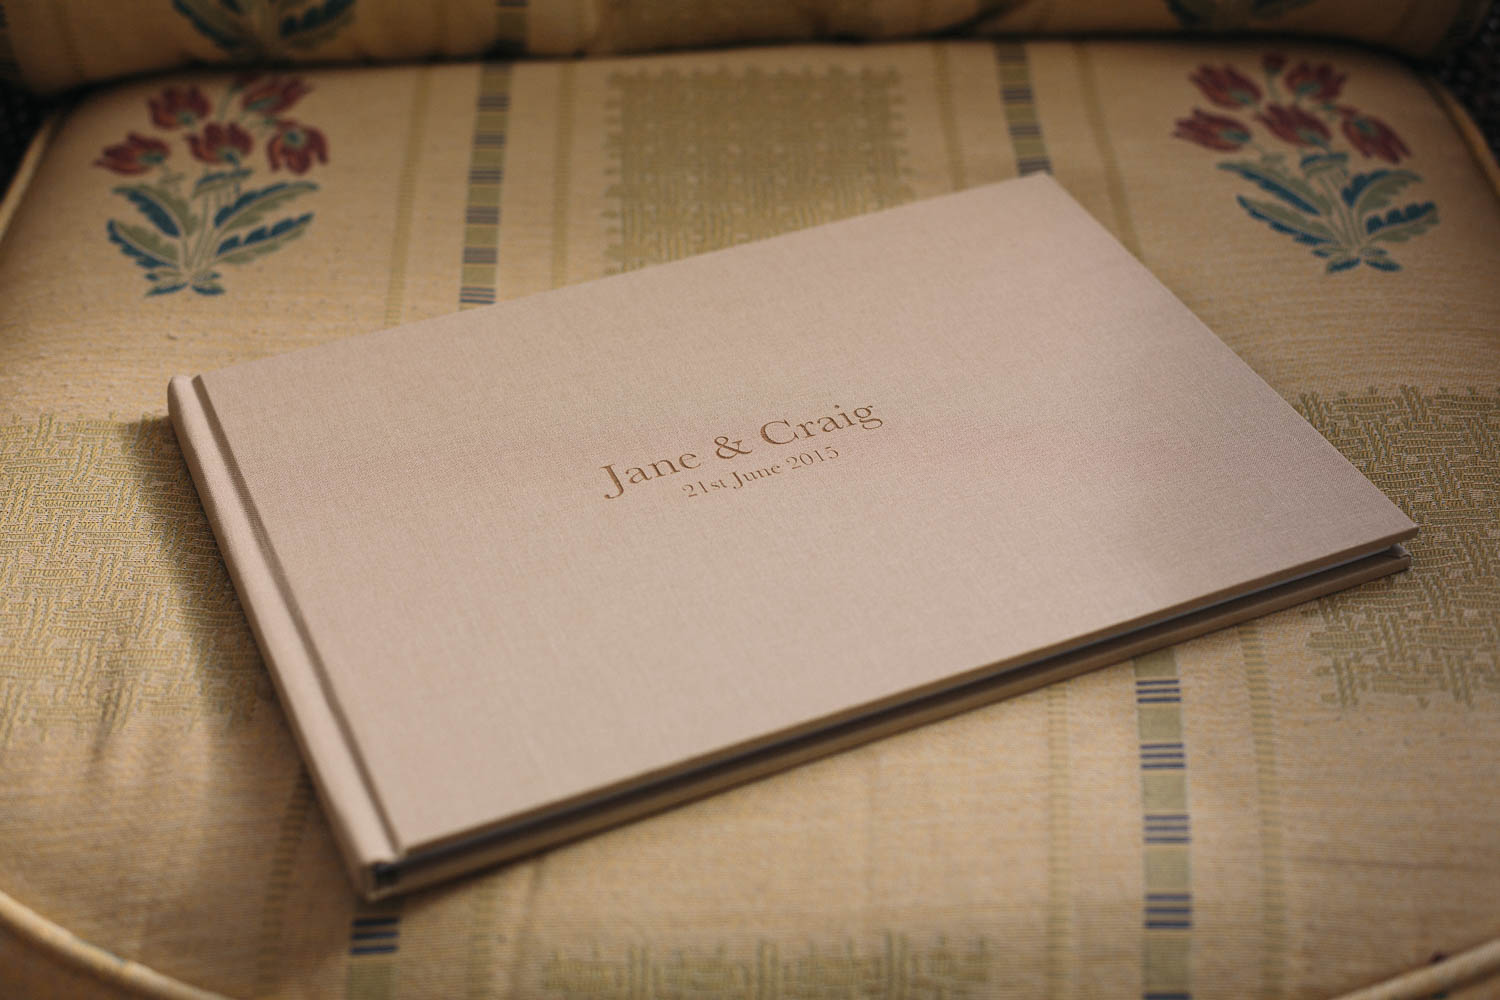 Jane & Craig Album Finished-1.jpg